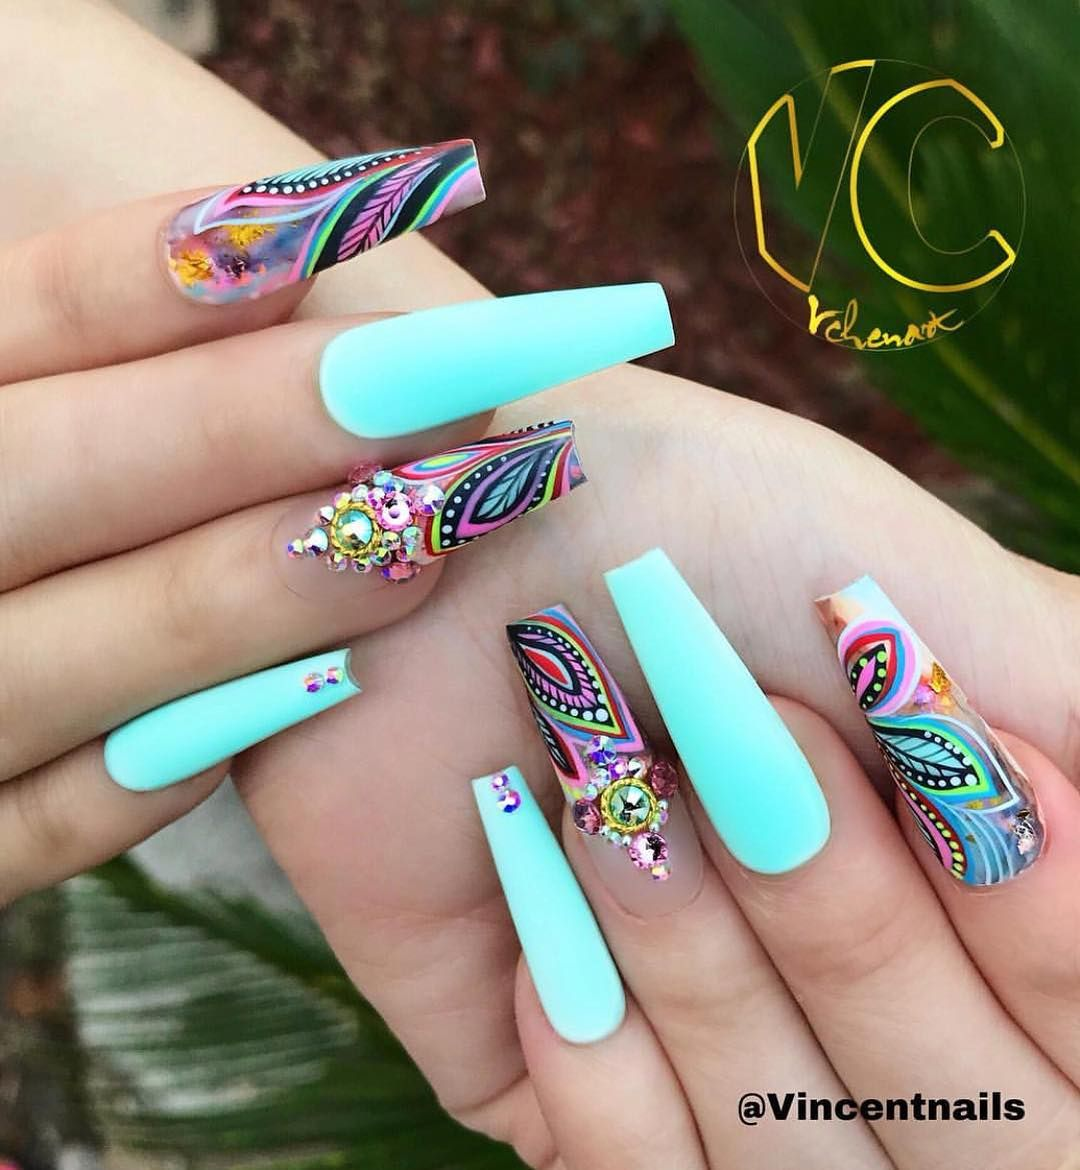 4 524 Likes 28 Comments Vina S Nails Vinanailshouston On Instagram It S Amazing Piece Of Art By Master Vincentna In 2020 Best Acrylic Nails Nails Nail Designs